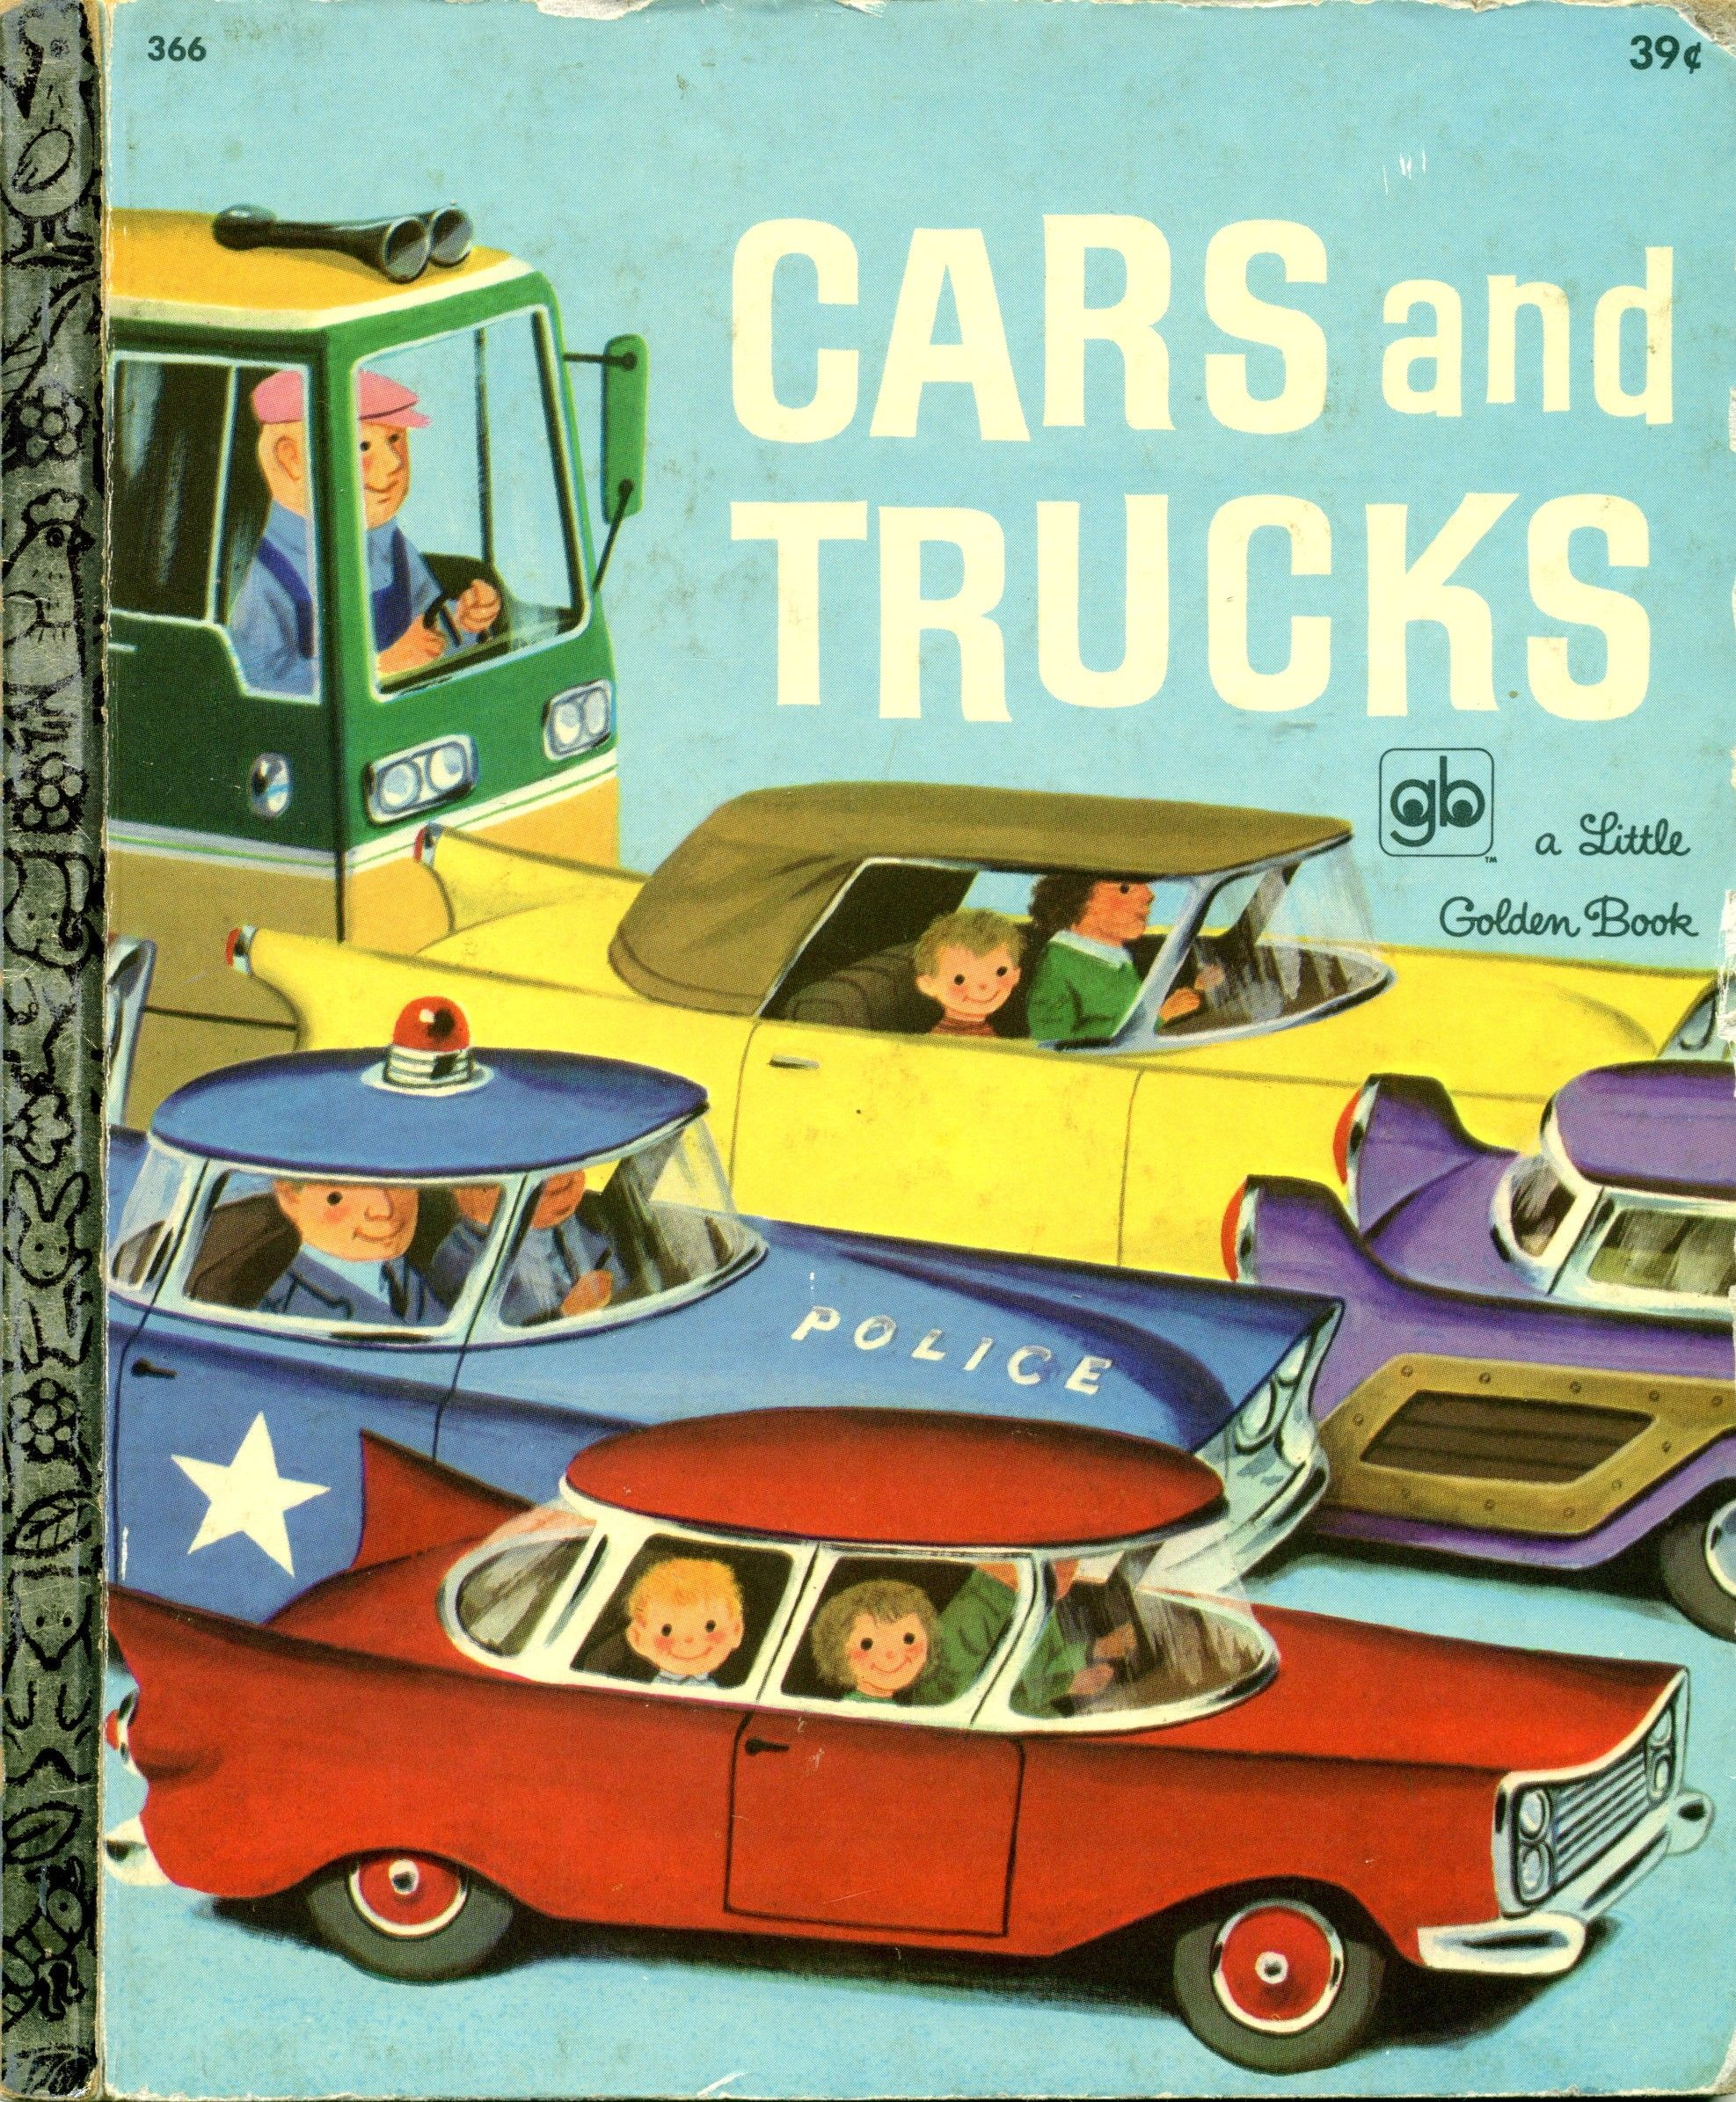 1000 Images About 1951 To 1959 Carz On Pinterest: Cars And Trucks, 1951,1959, 6th Printing, 1971...pictures